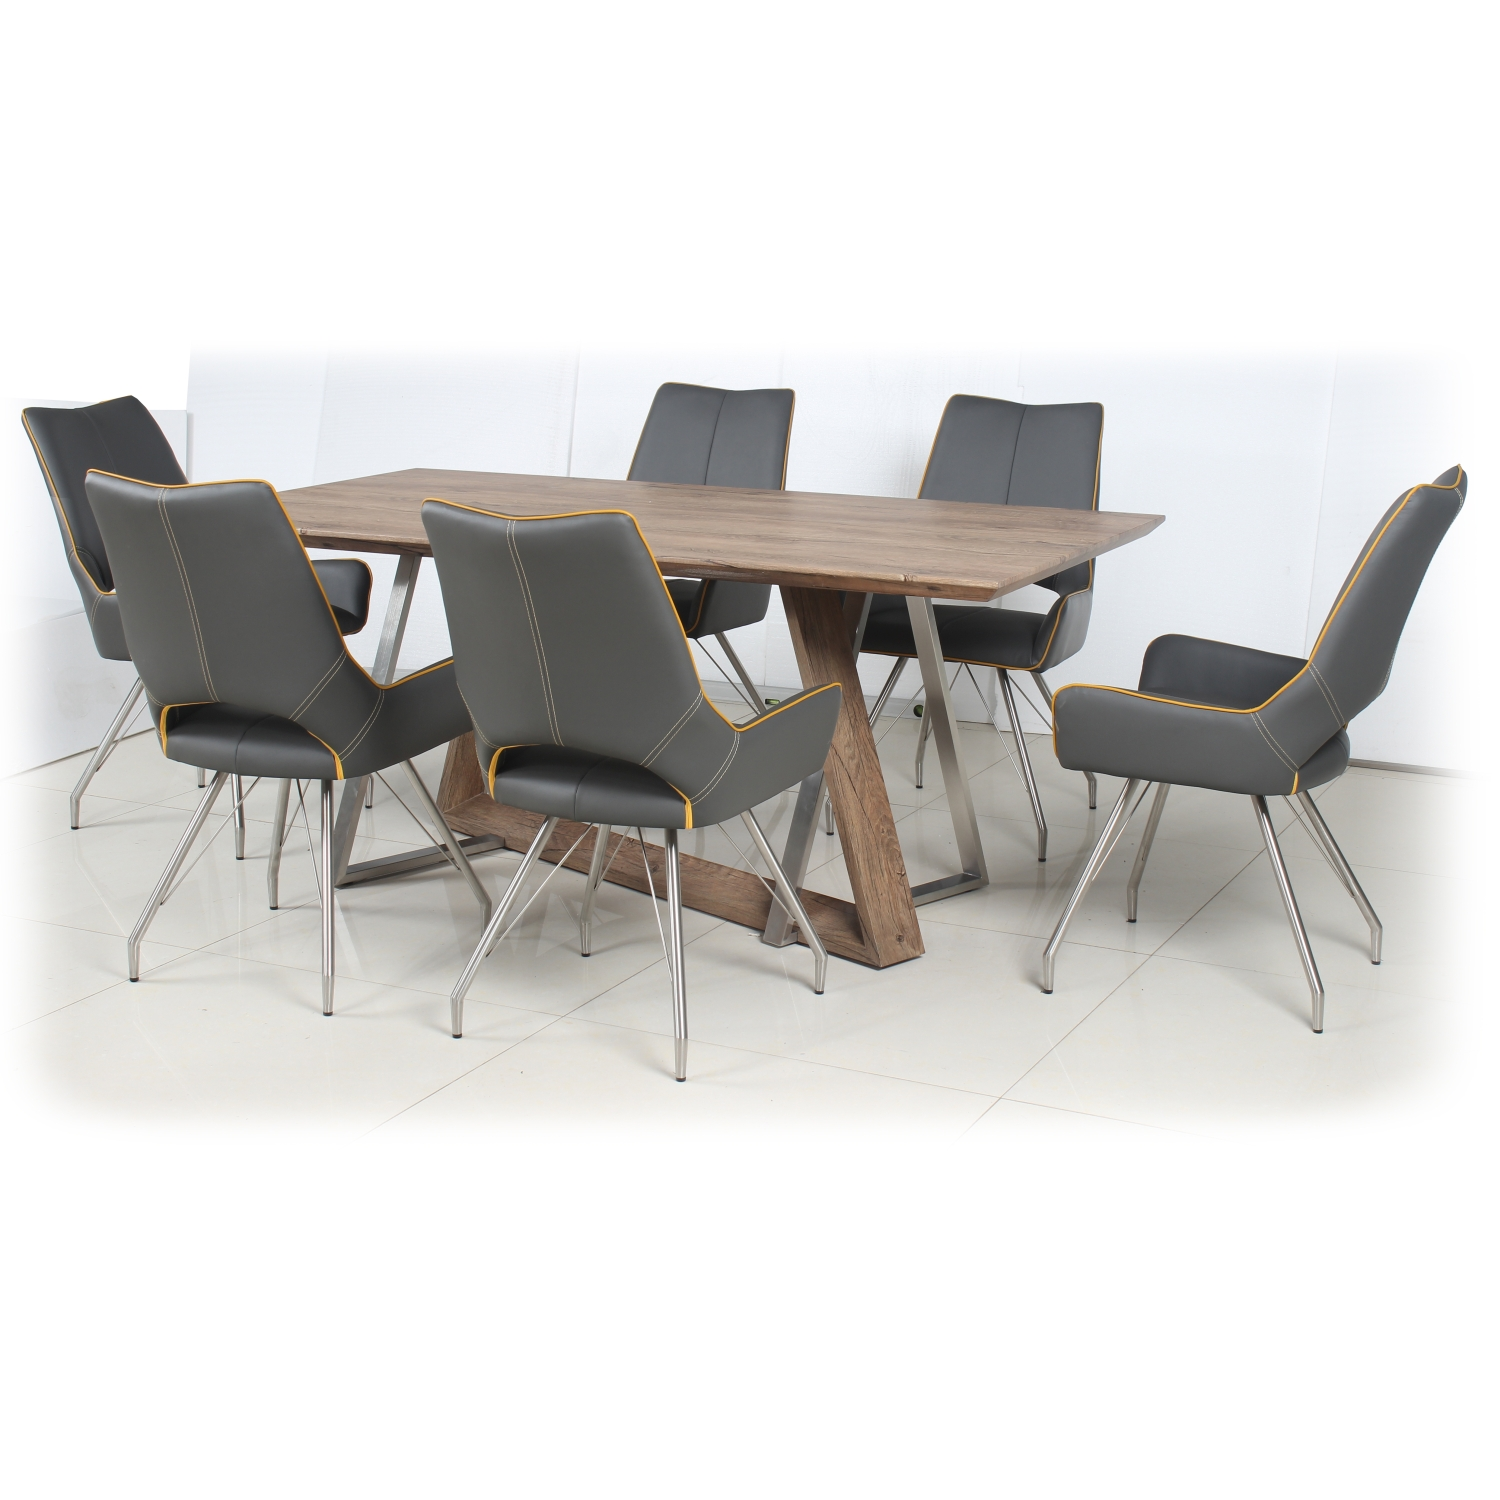 Light Auburn Dining Table with 4 Medallion Yellow Leather Match Dining Chairs With Piping